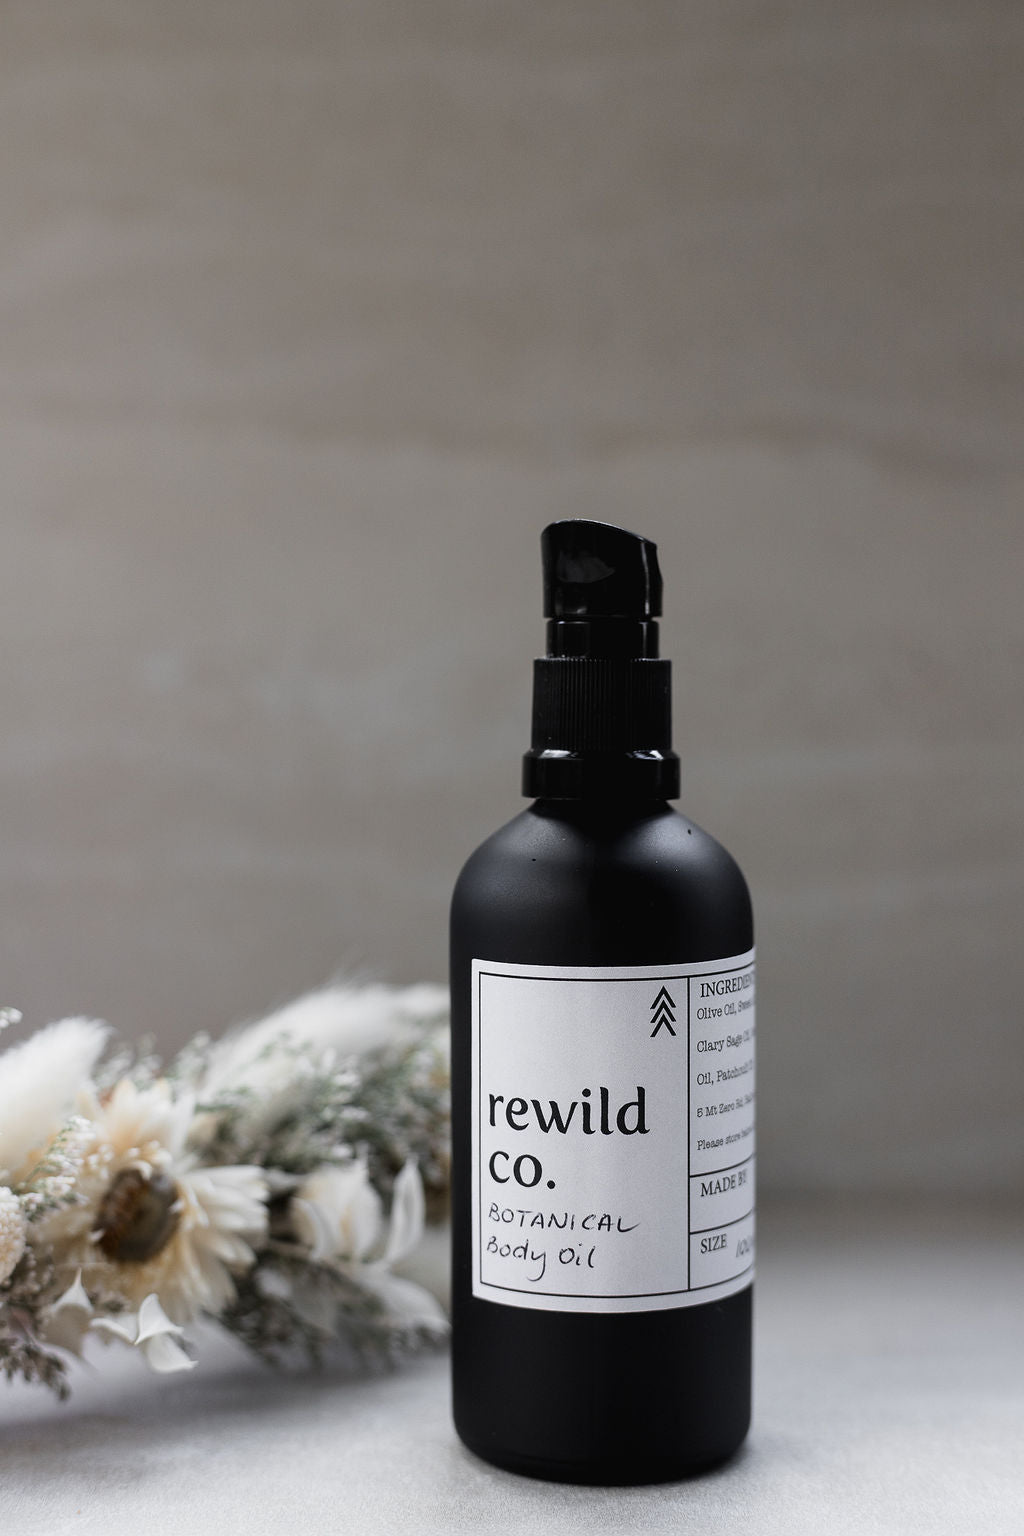 Botanical Pure Oil 100ml by Rewild co.